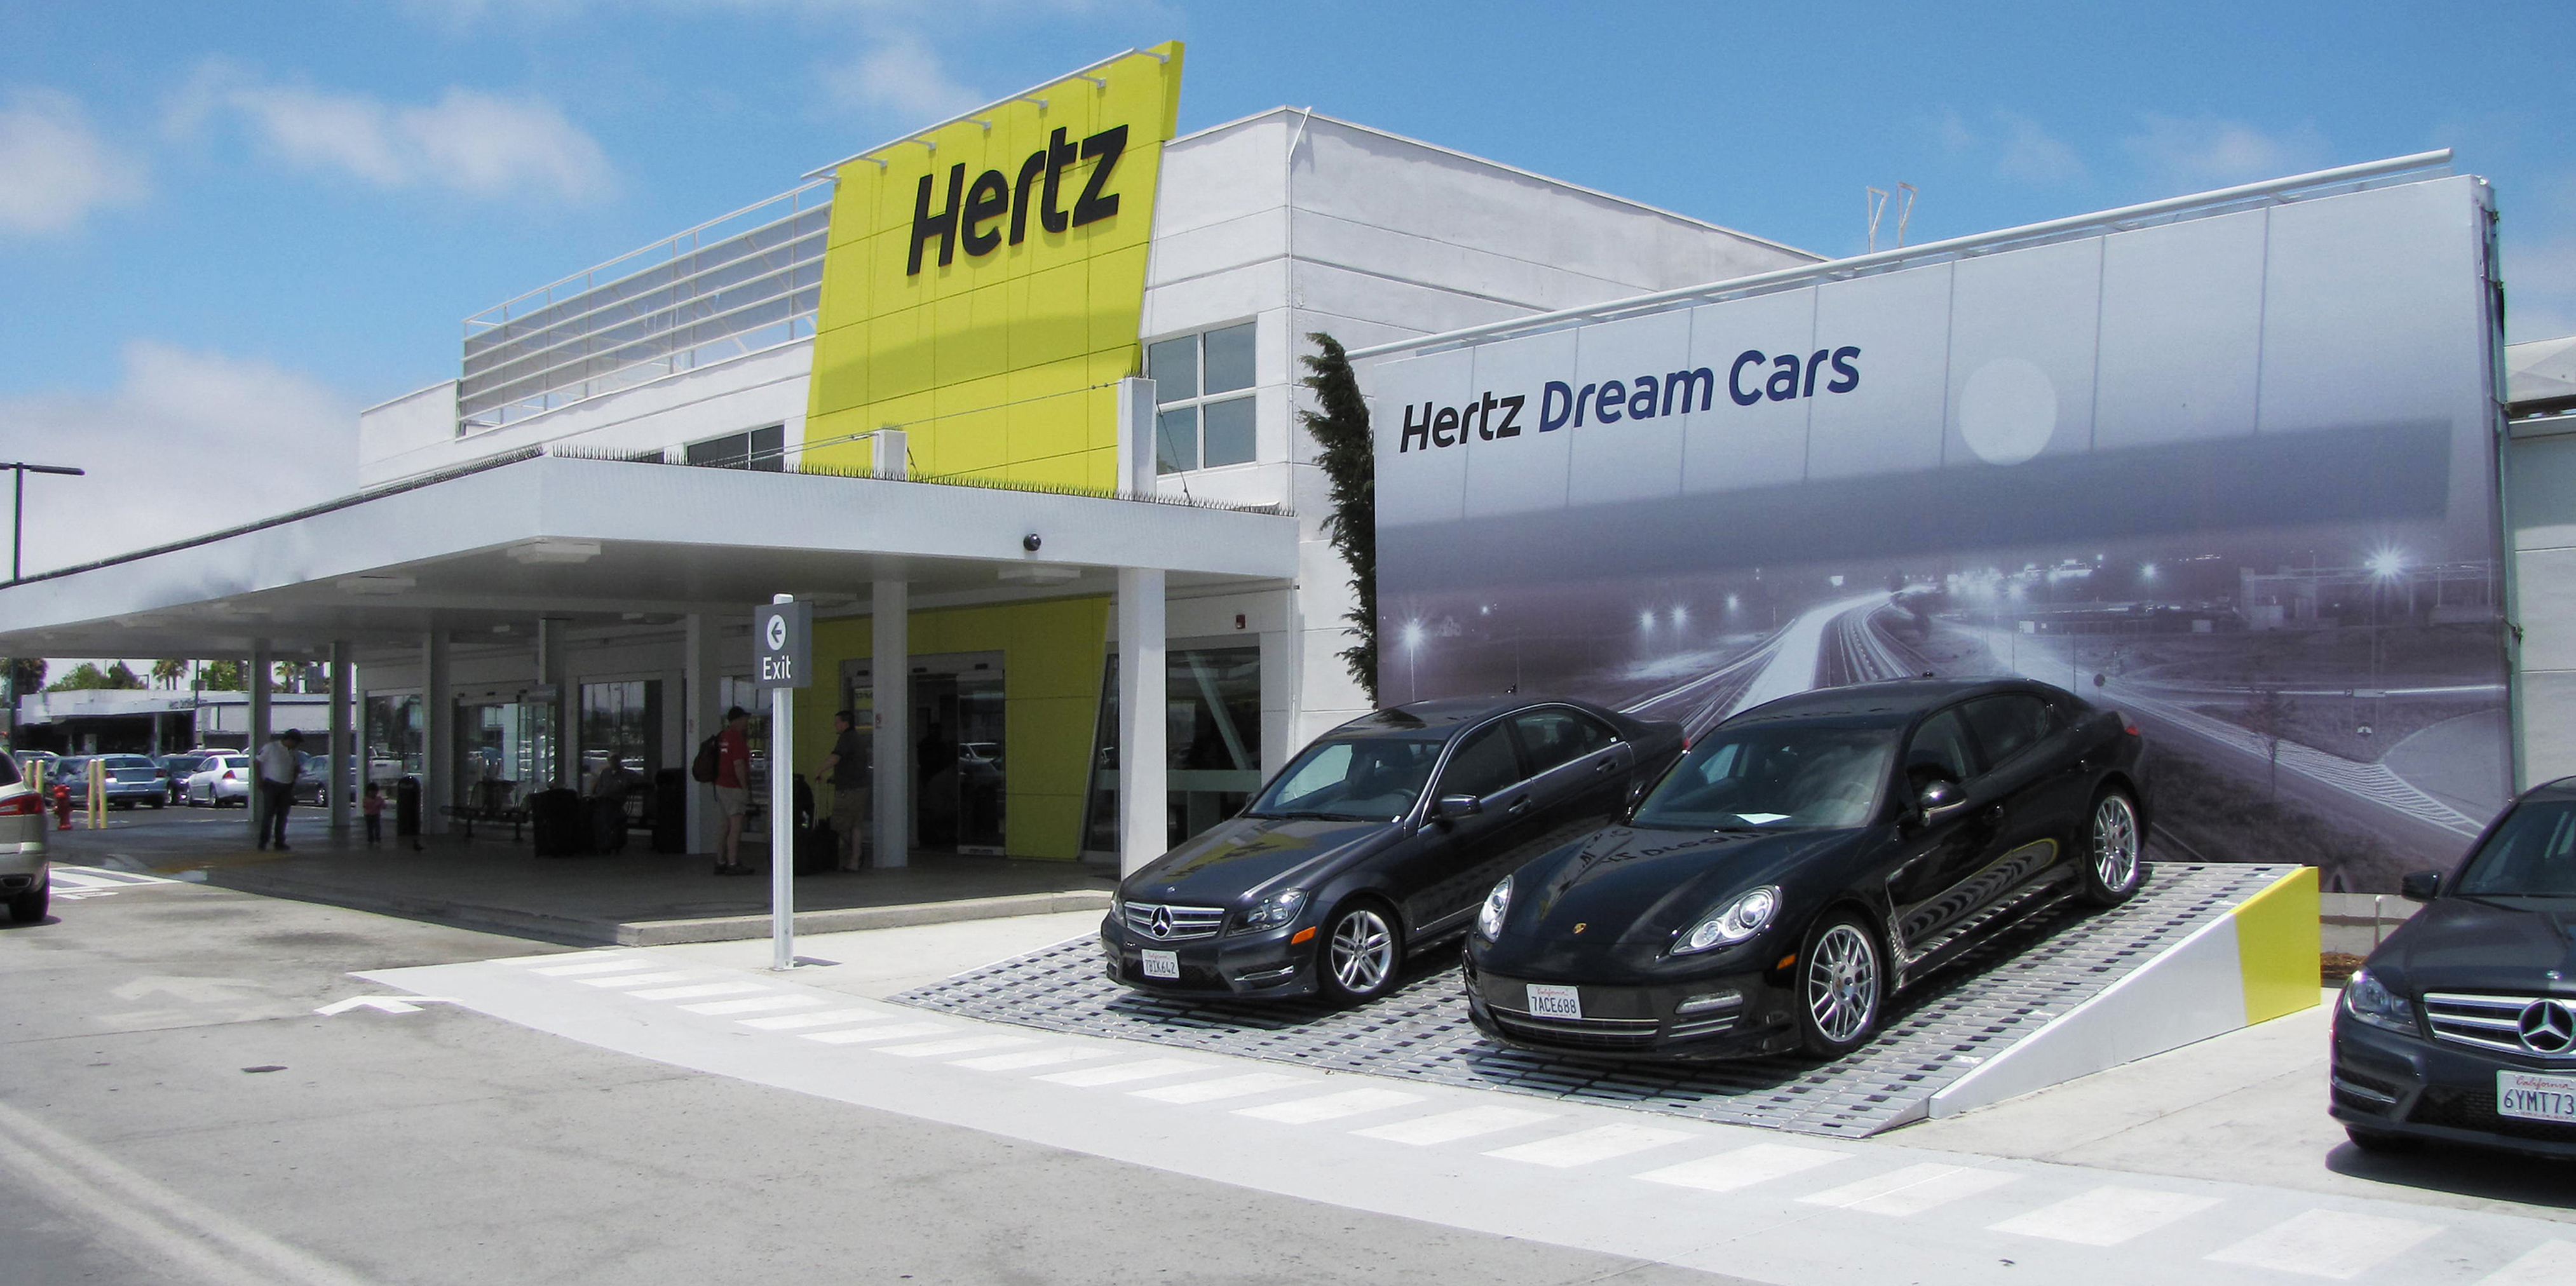 Hertz in COLLEGE PARK, Georgia